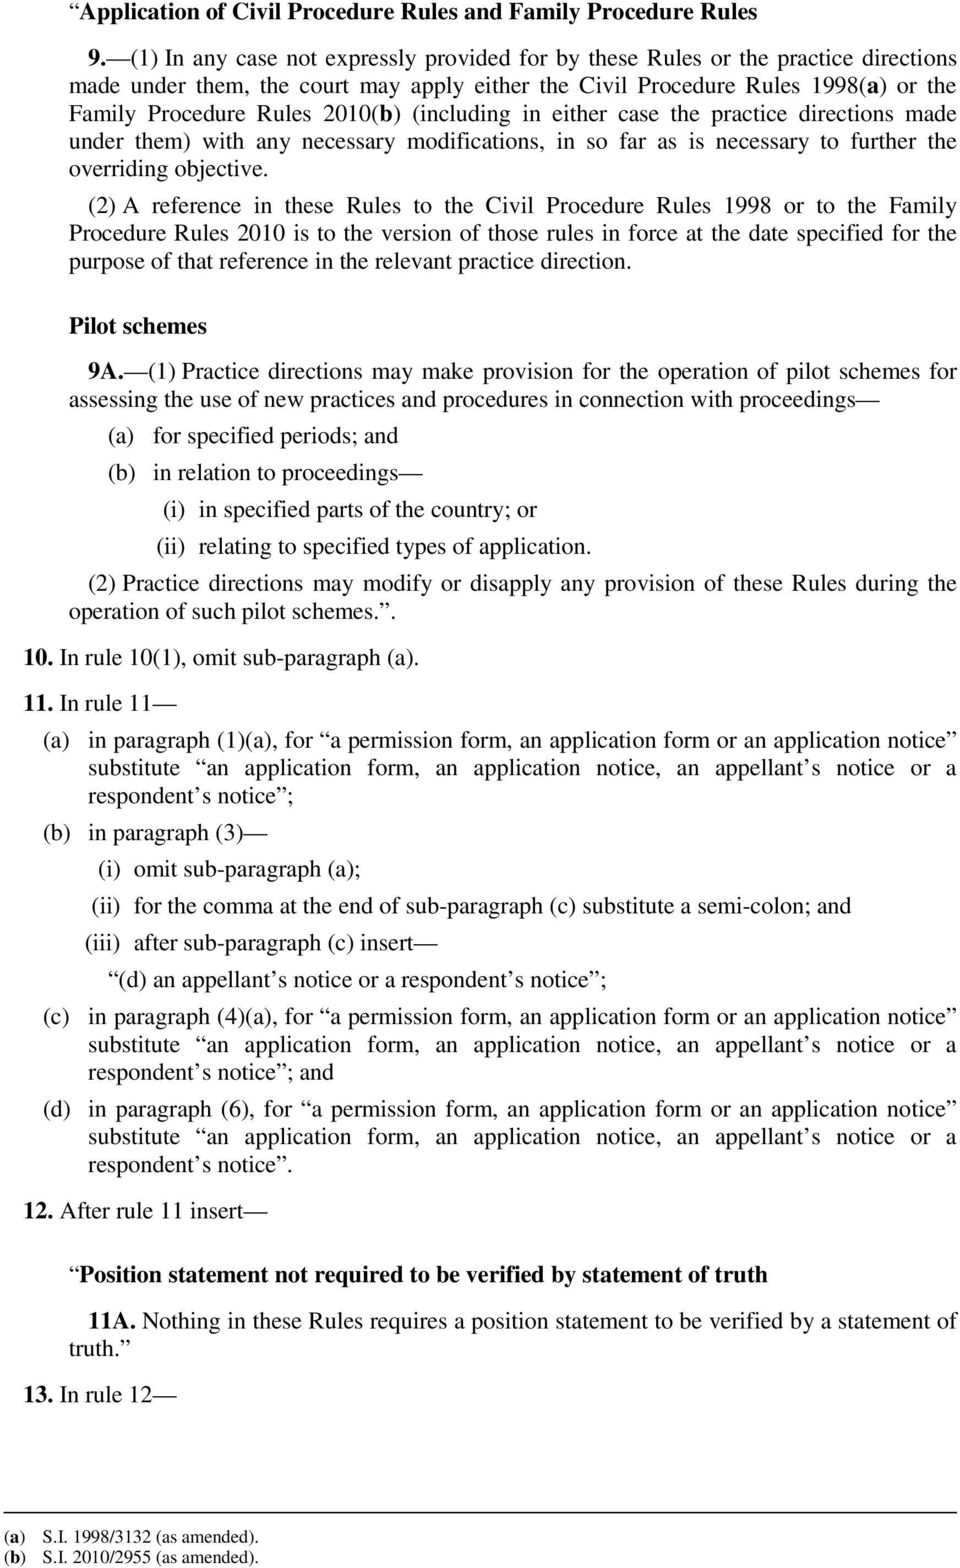 2010(b) (including in either case the practice directions made under them) with any necessary modifications, in so far as is necessary to further the overriding objective.